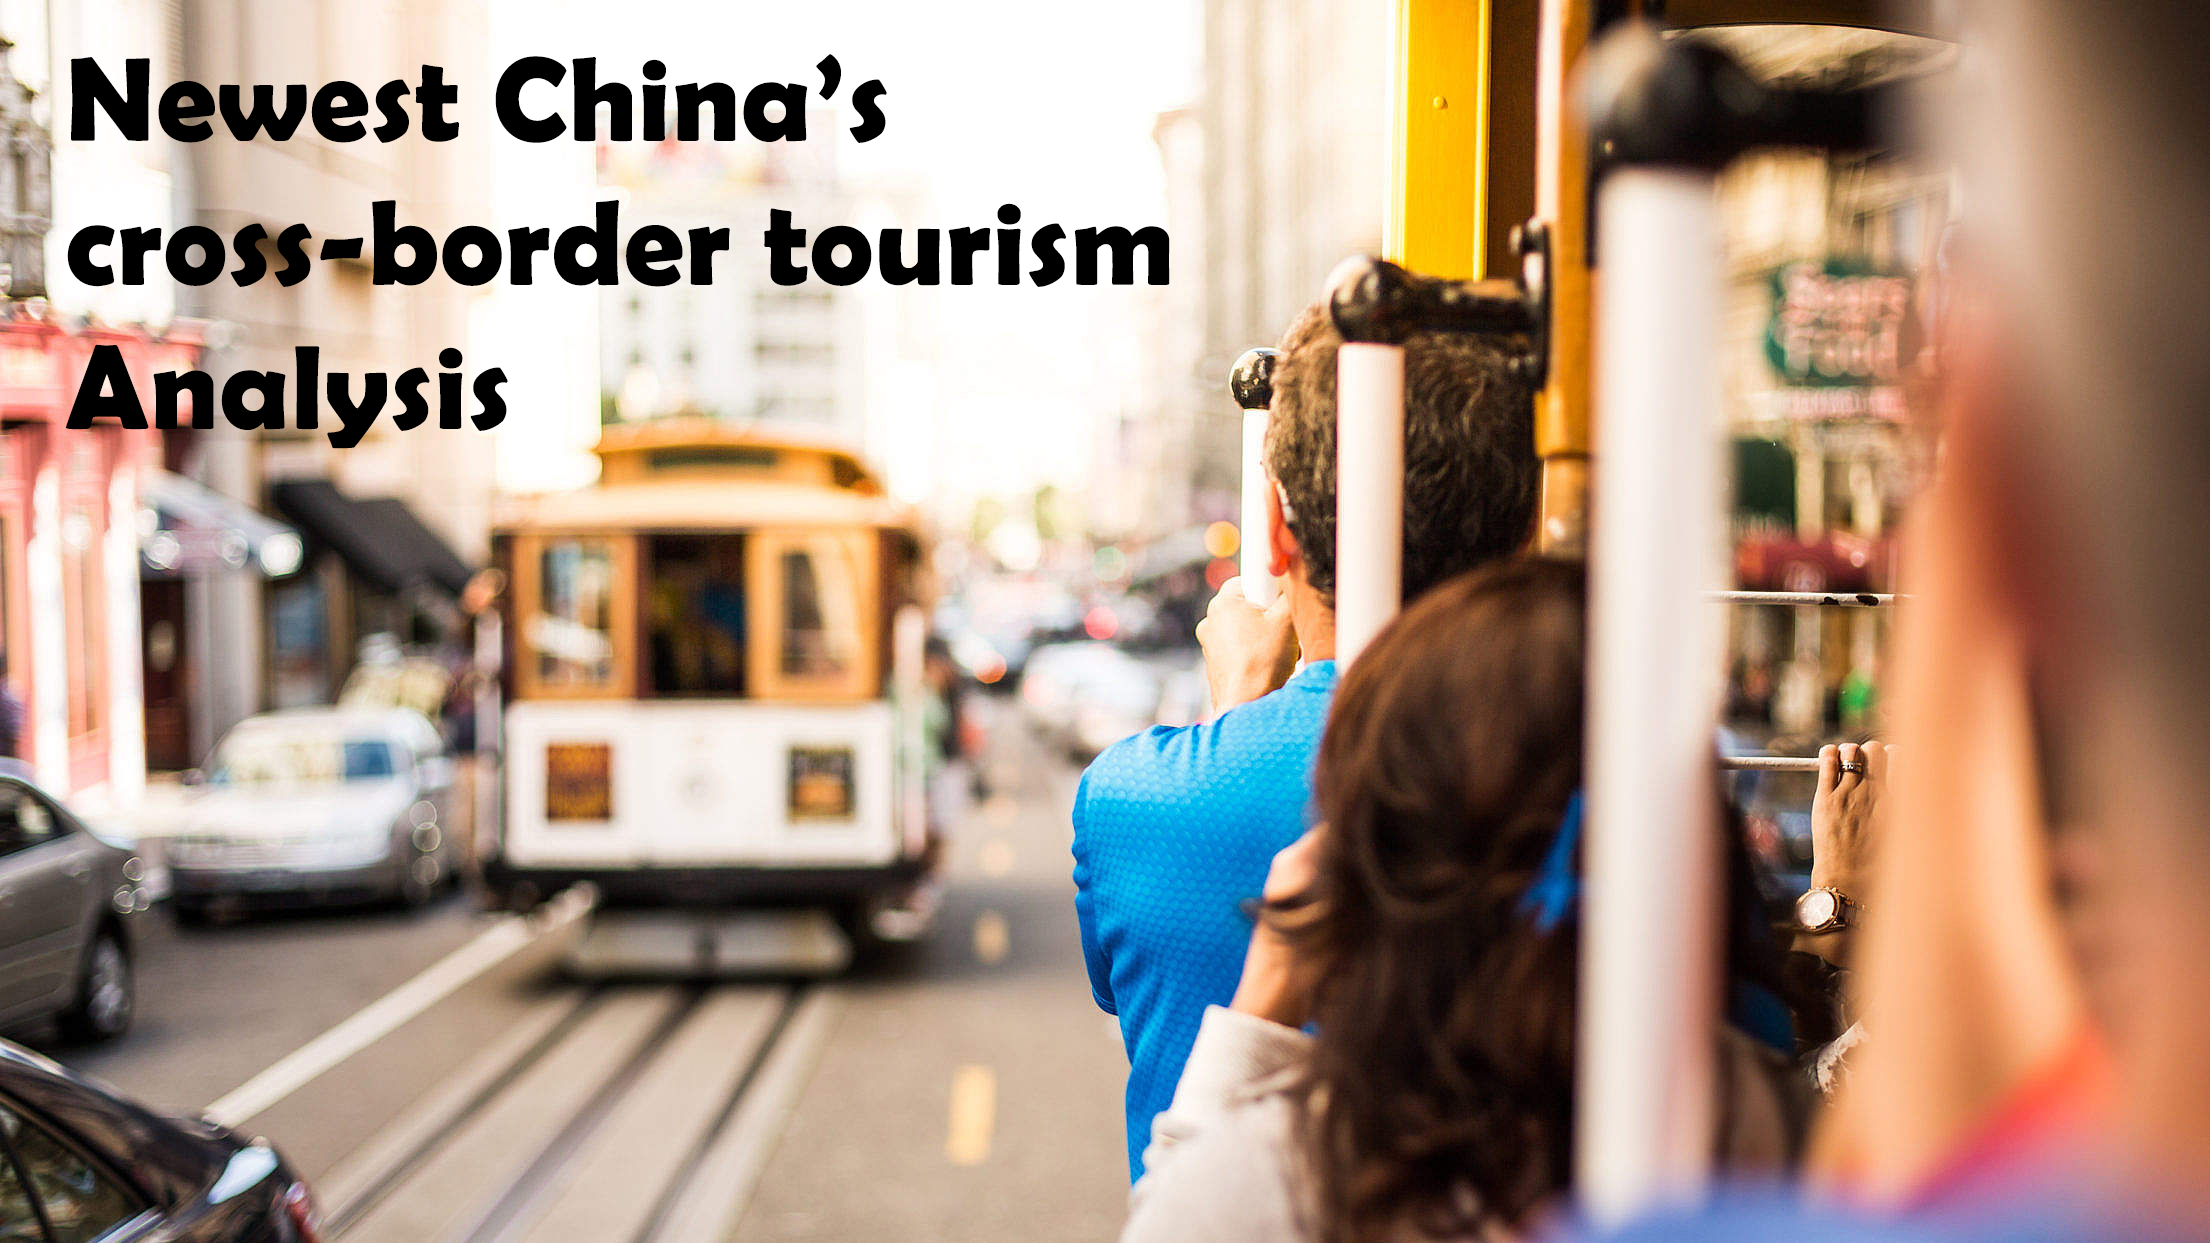 Newest China's cross-border tourism Analysis